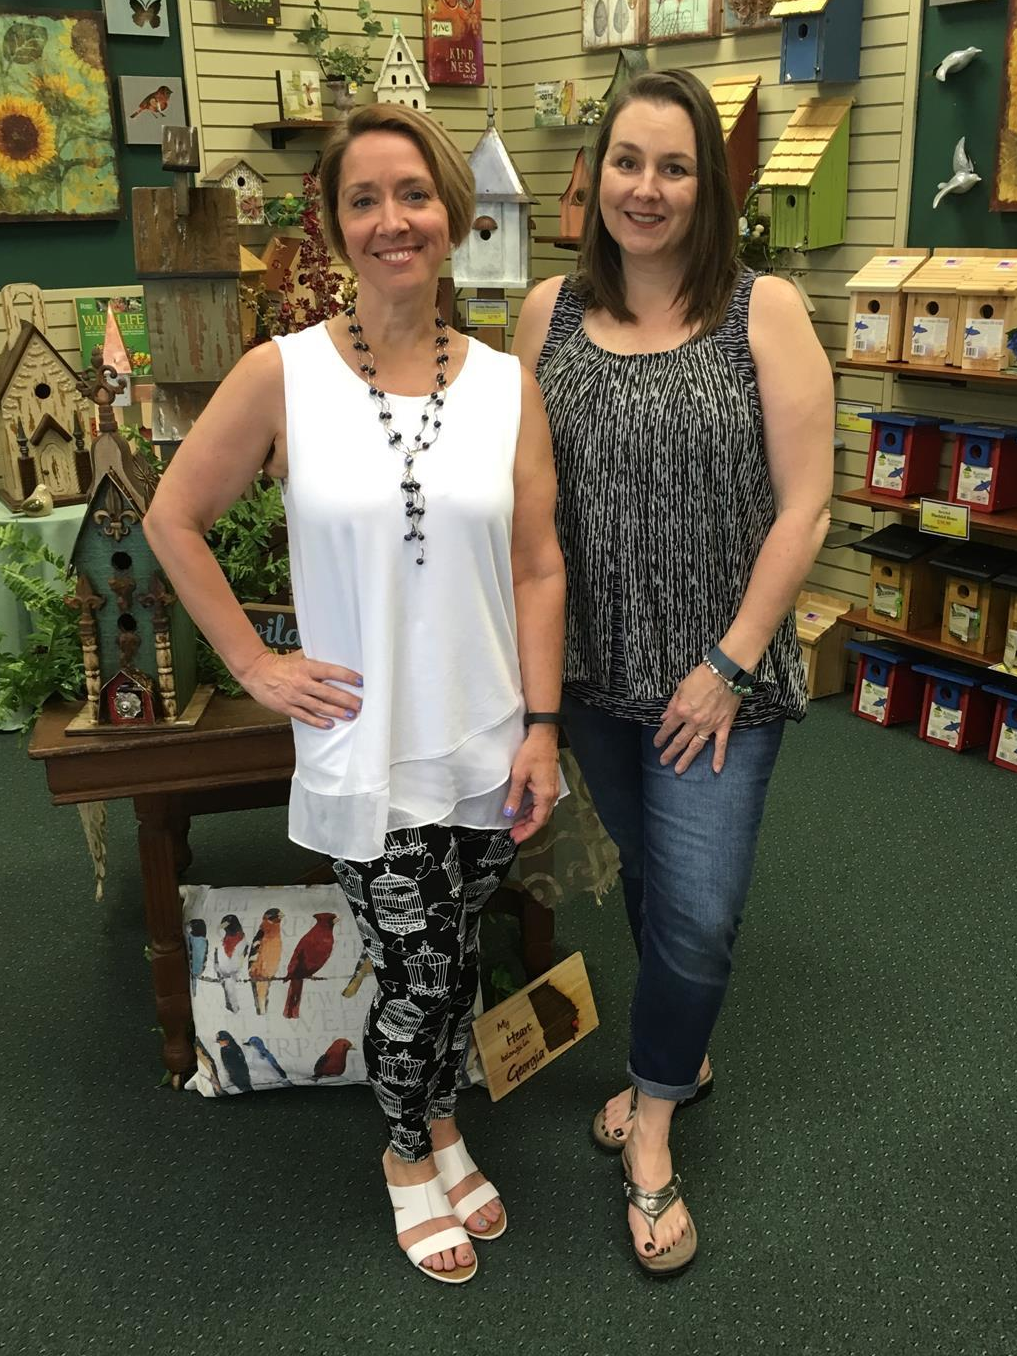 Julia Elliott and Karen Theodorou, owners of Bird Watcher Supply Company